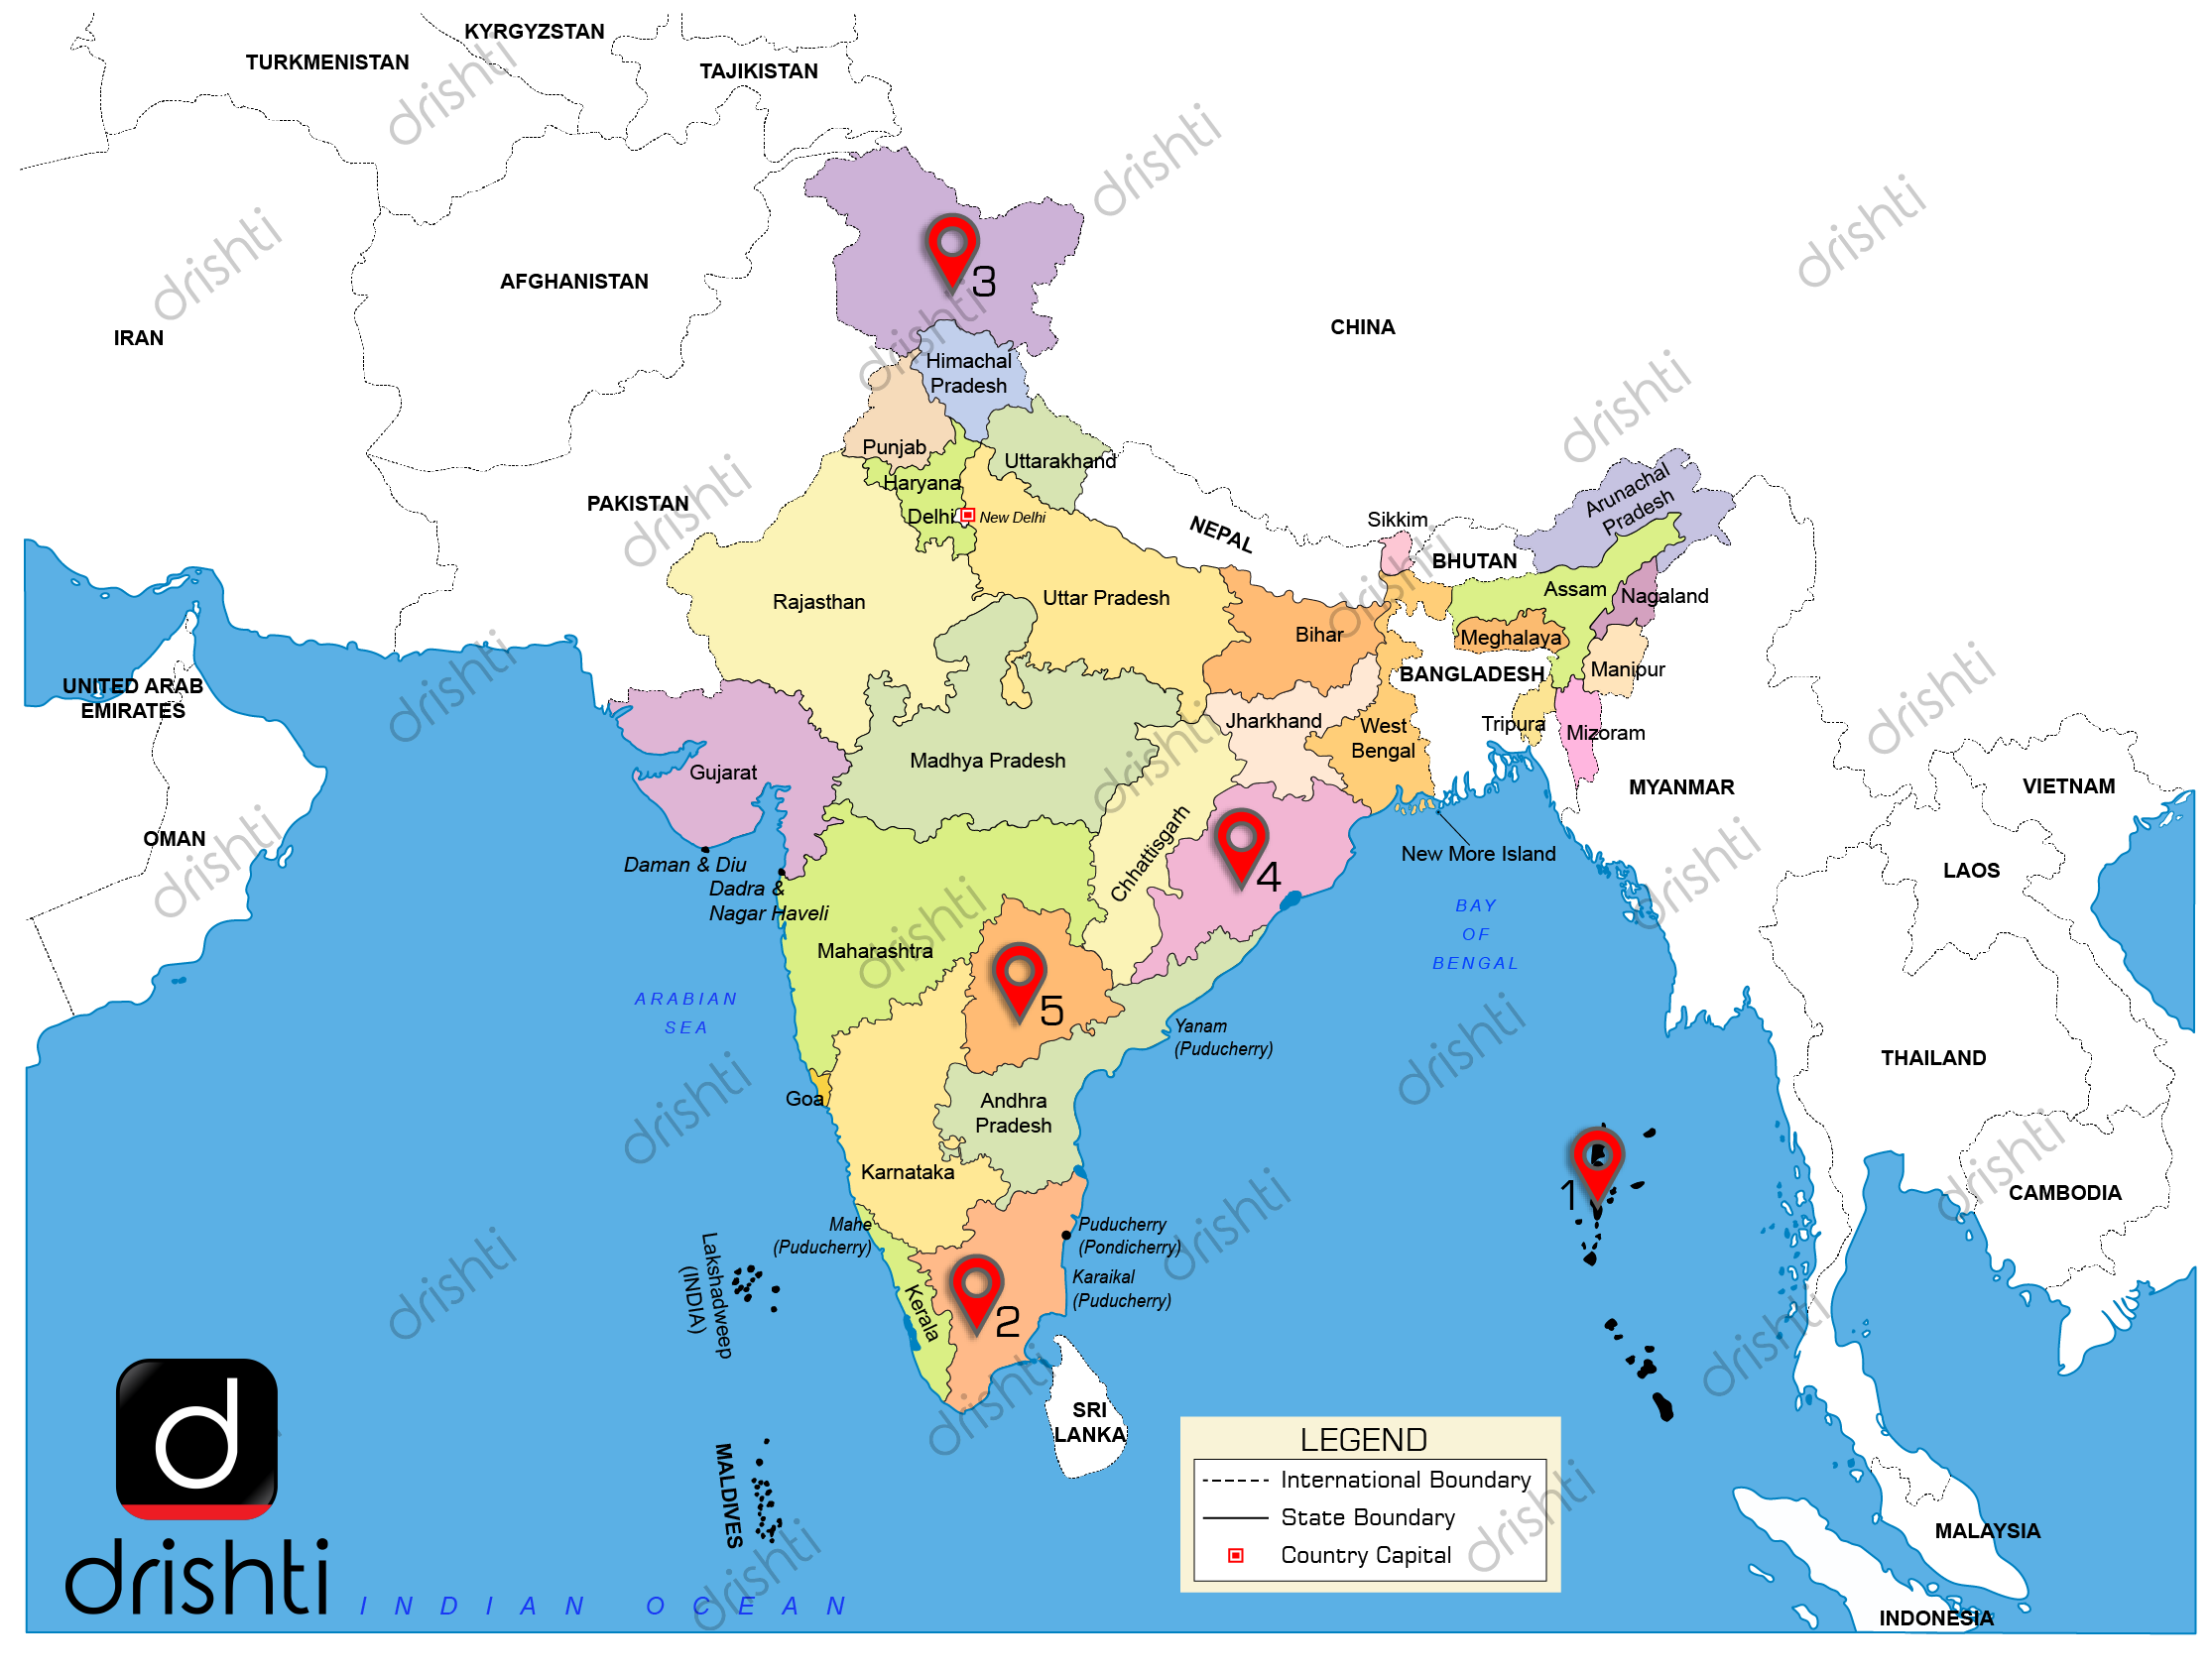 india map with lakes India Map September I 2019 Learning Through Maps india map with lakes